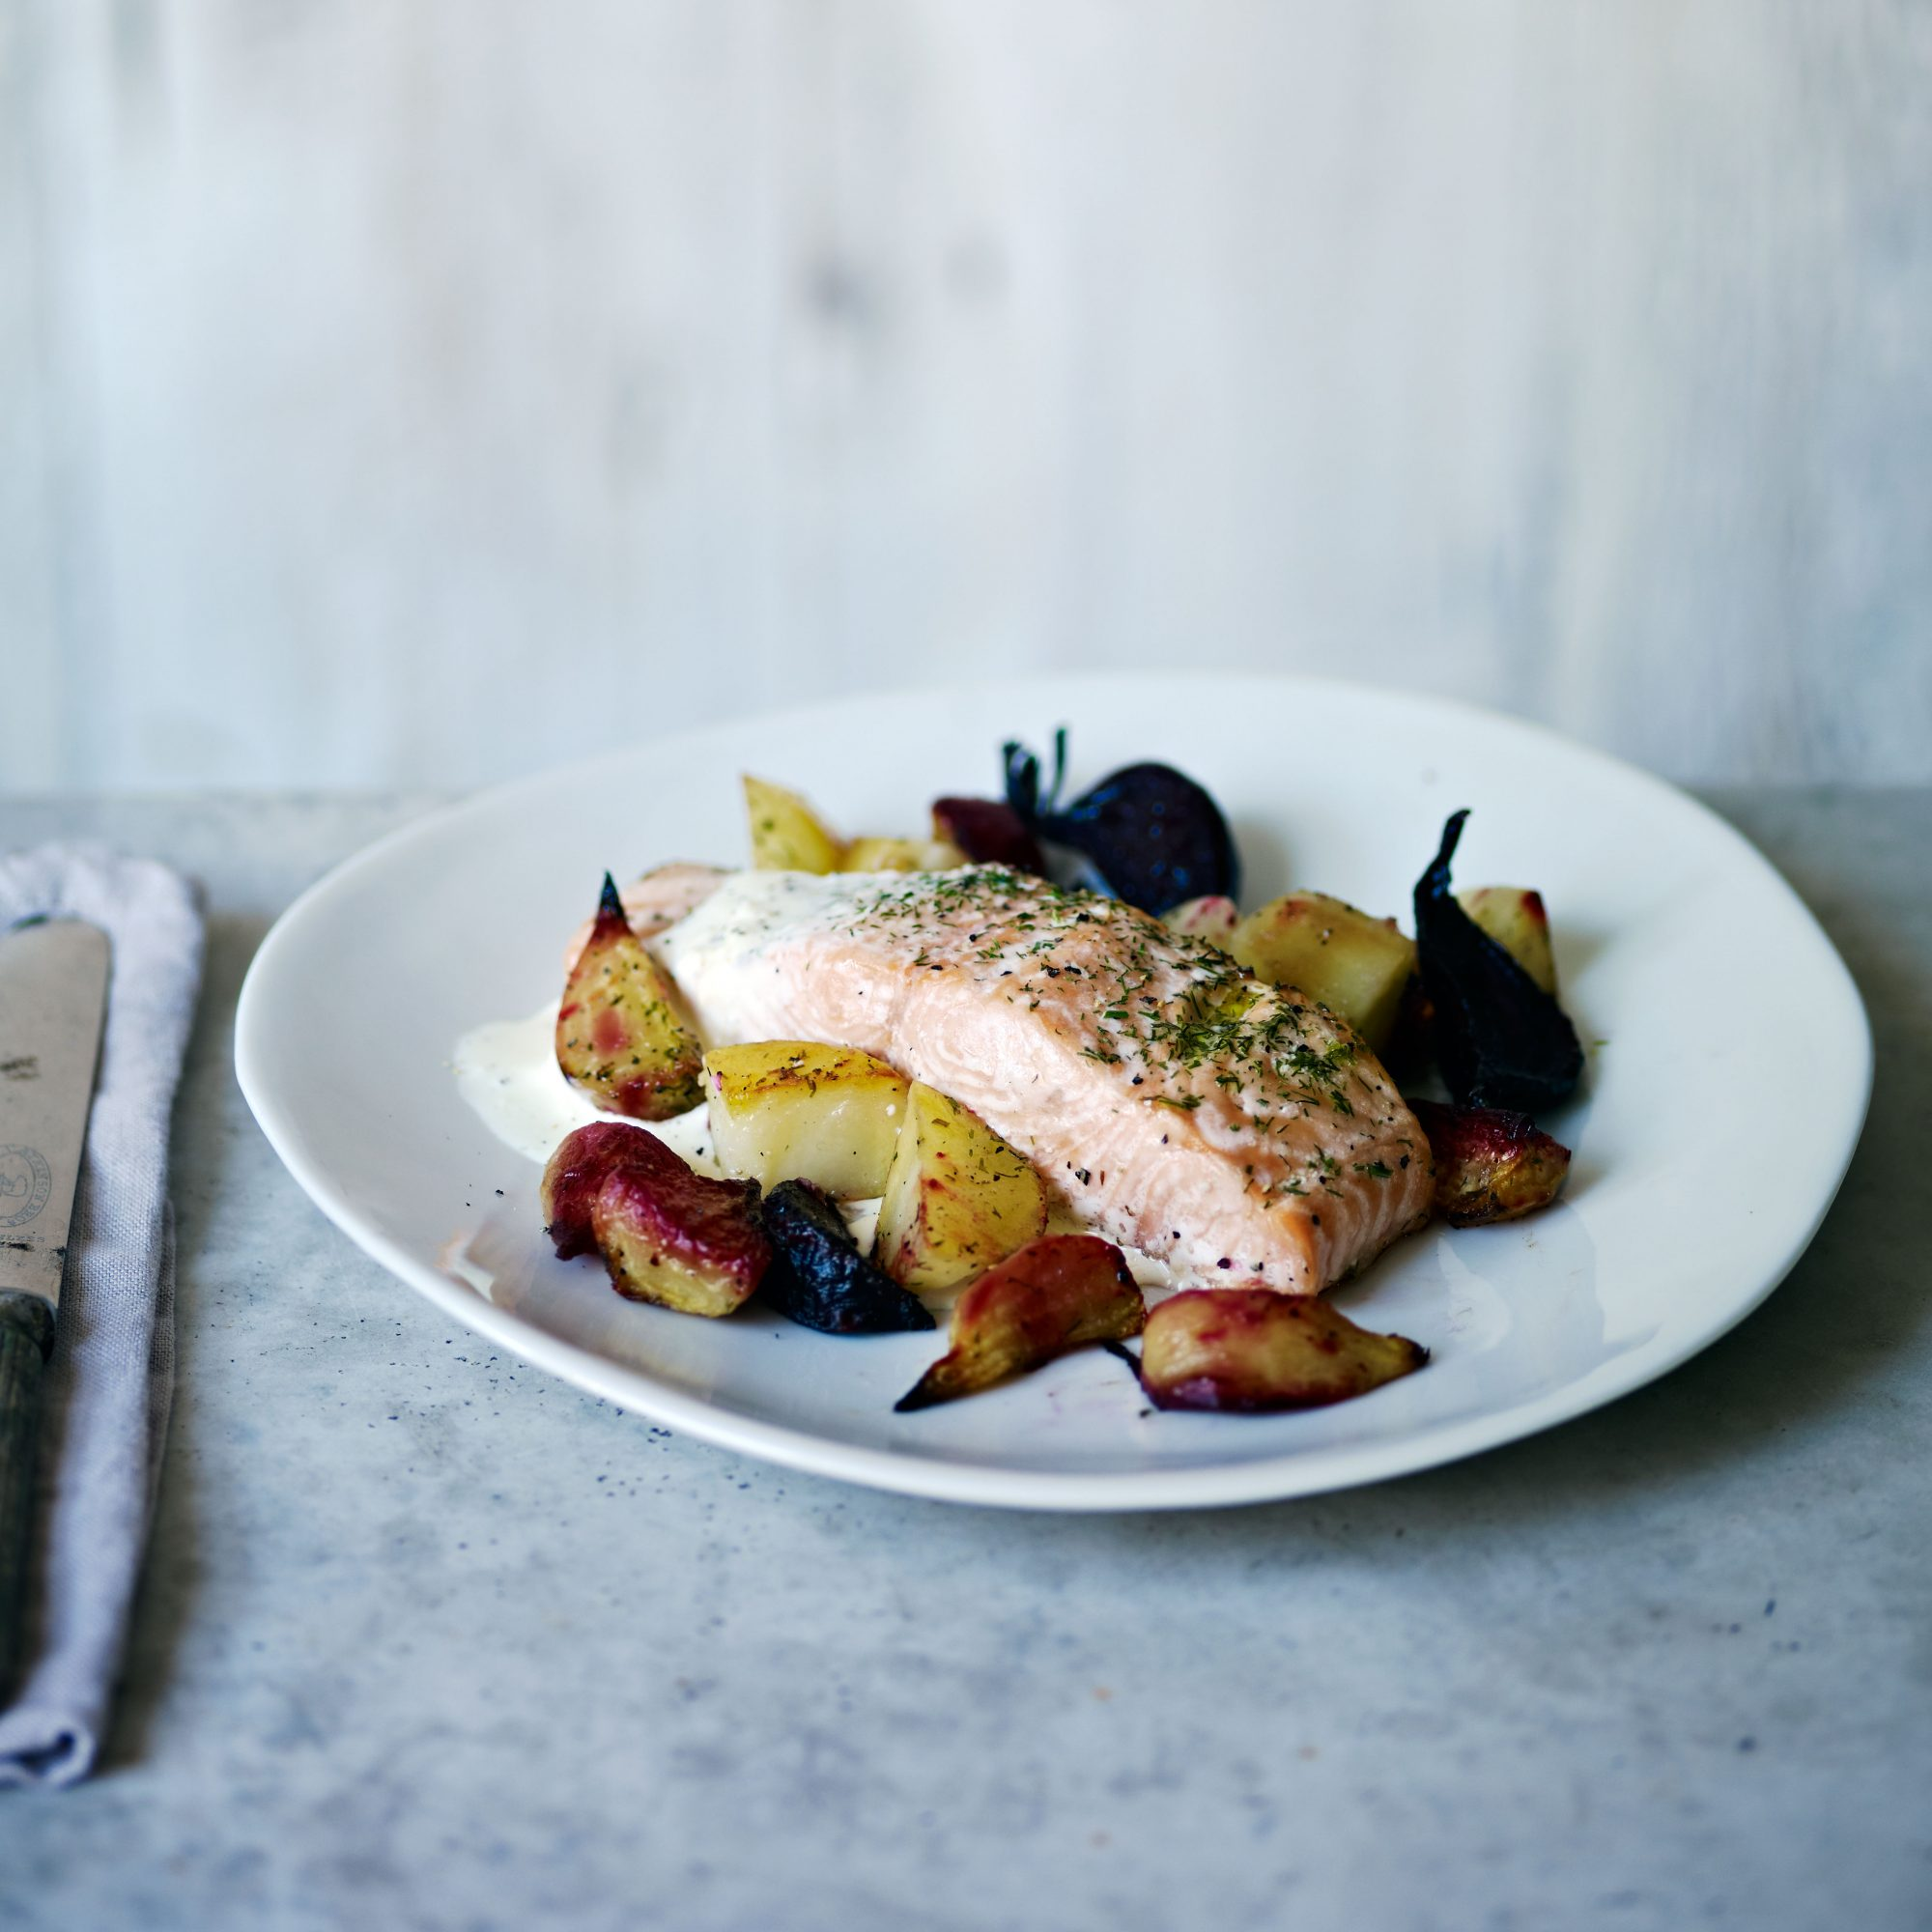 original-201306-r-roasted-salmon-beets-and-potatoes-with-horseradish-cream.jpg